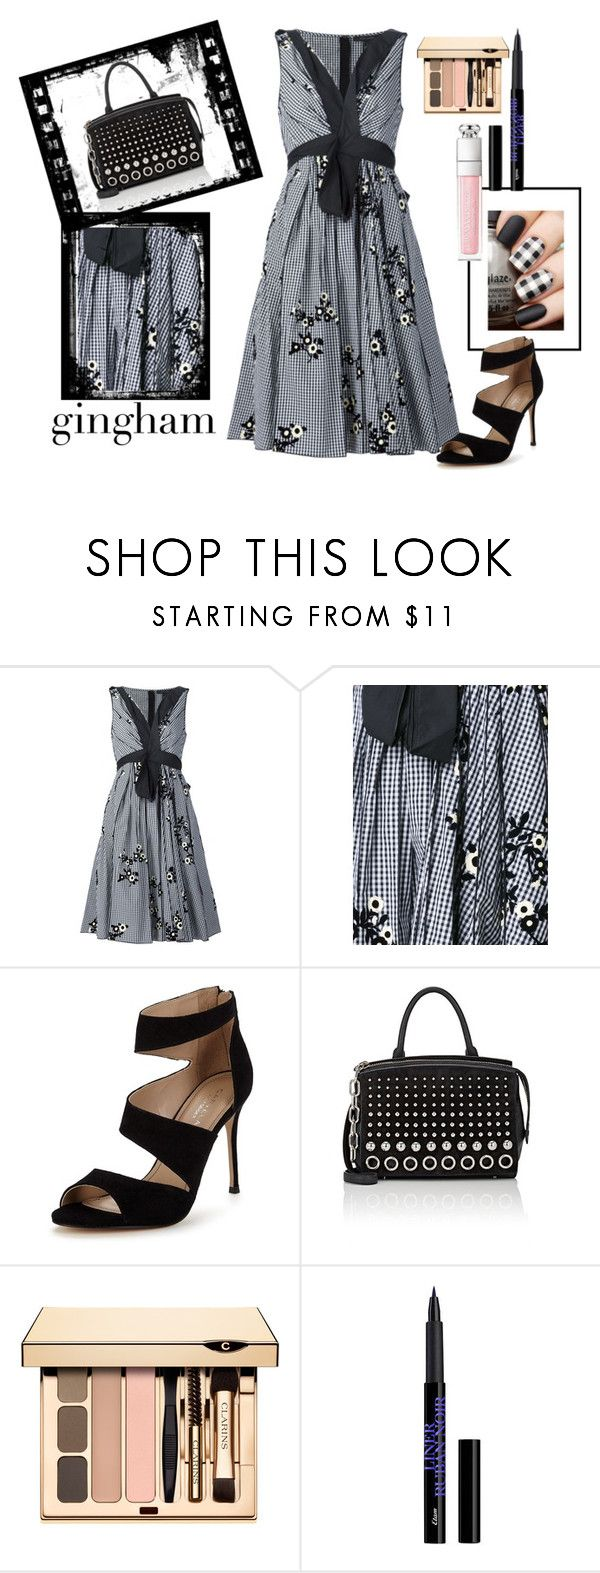 """Gingham Mono"" by kelly-floramoon-legg ❤ liked on Polyvore featuring Marc Jacobs, Carvela, Alexander Wang and gingham"